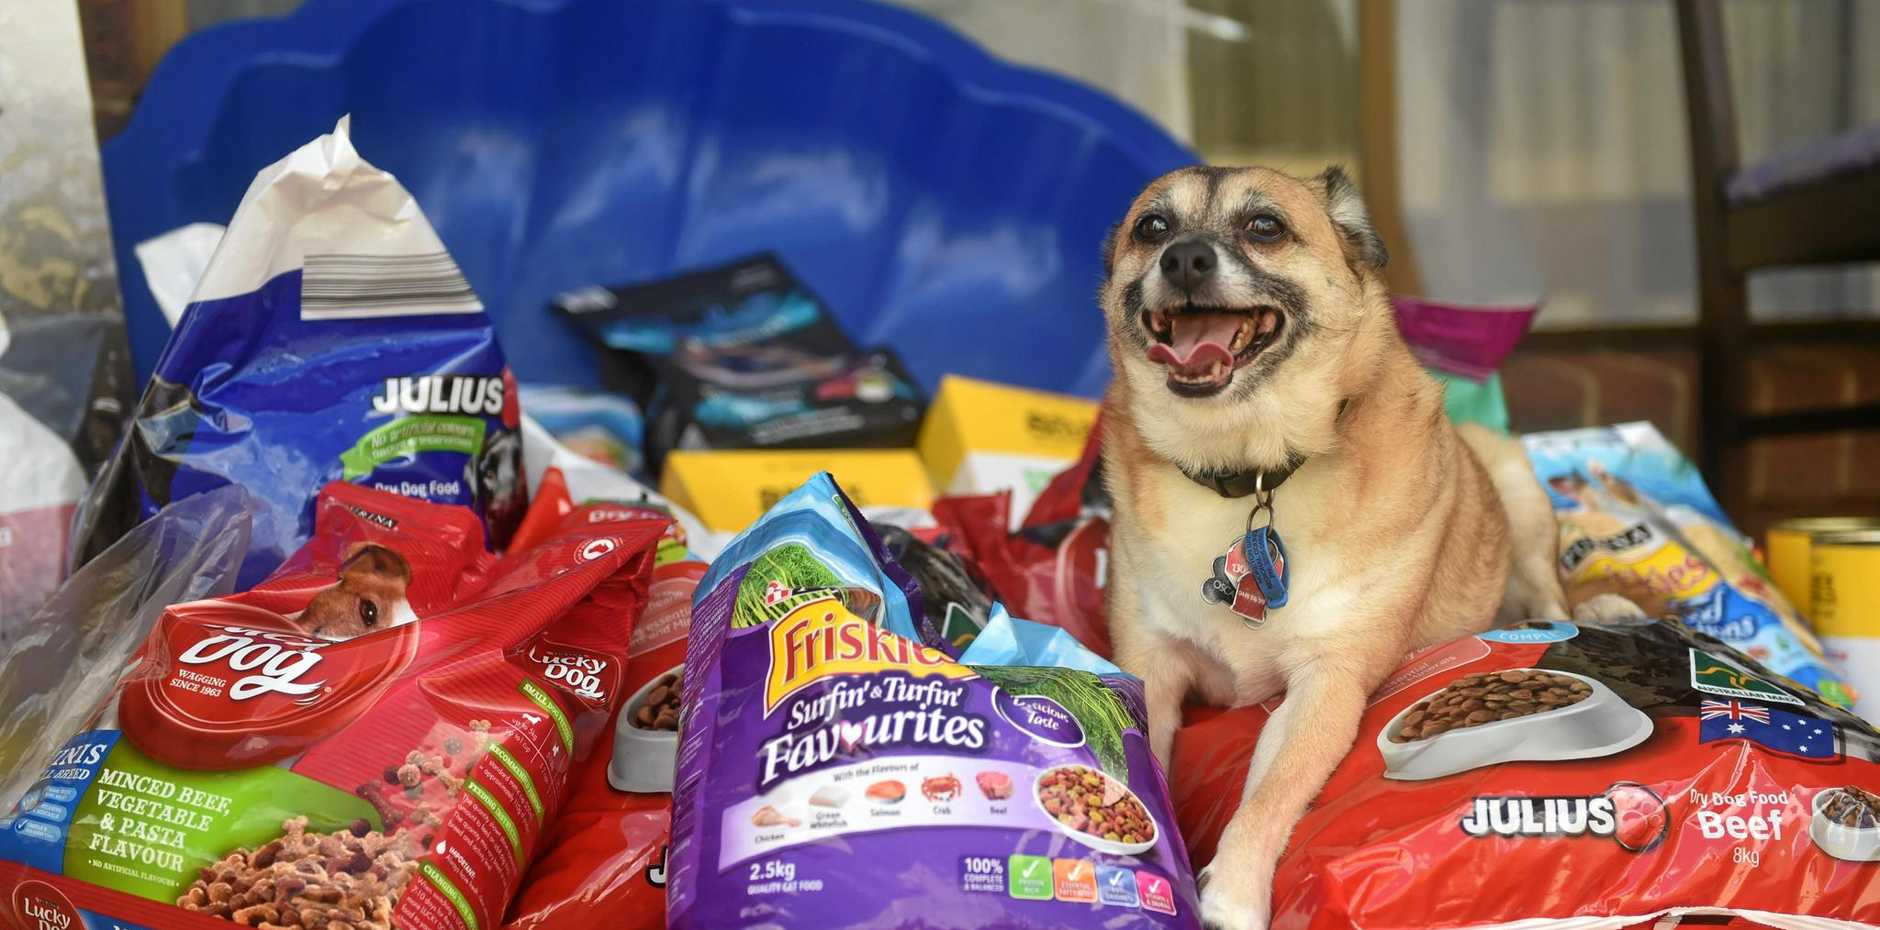 Moreton Lost Animal Register are collecting donations of pet food to help those affected.